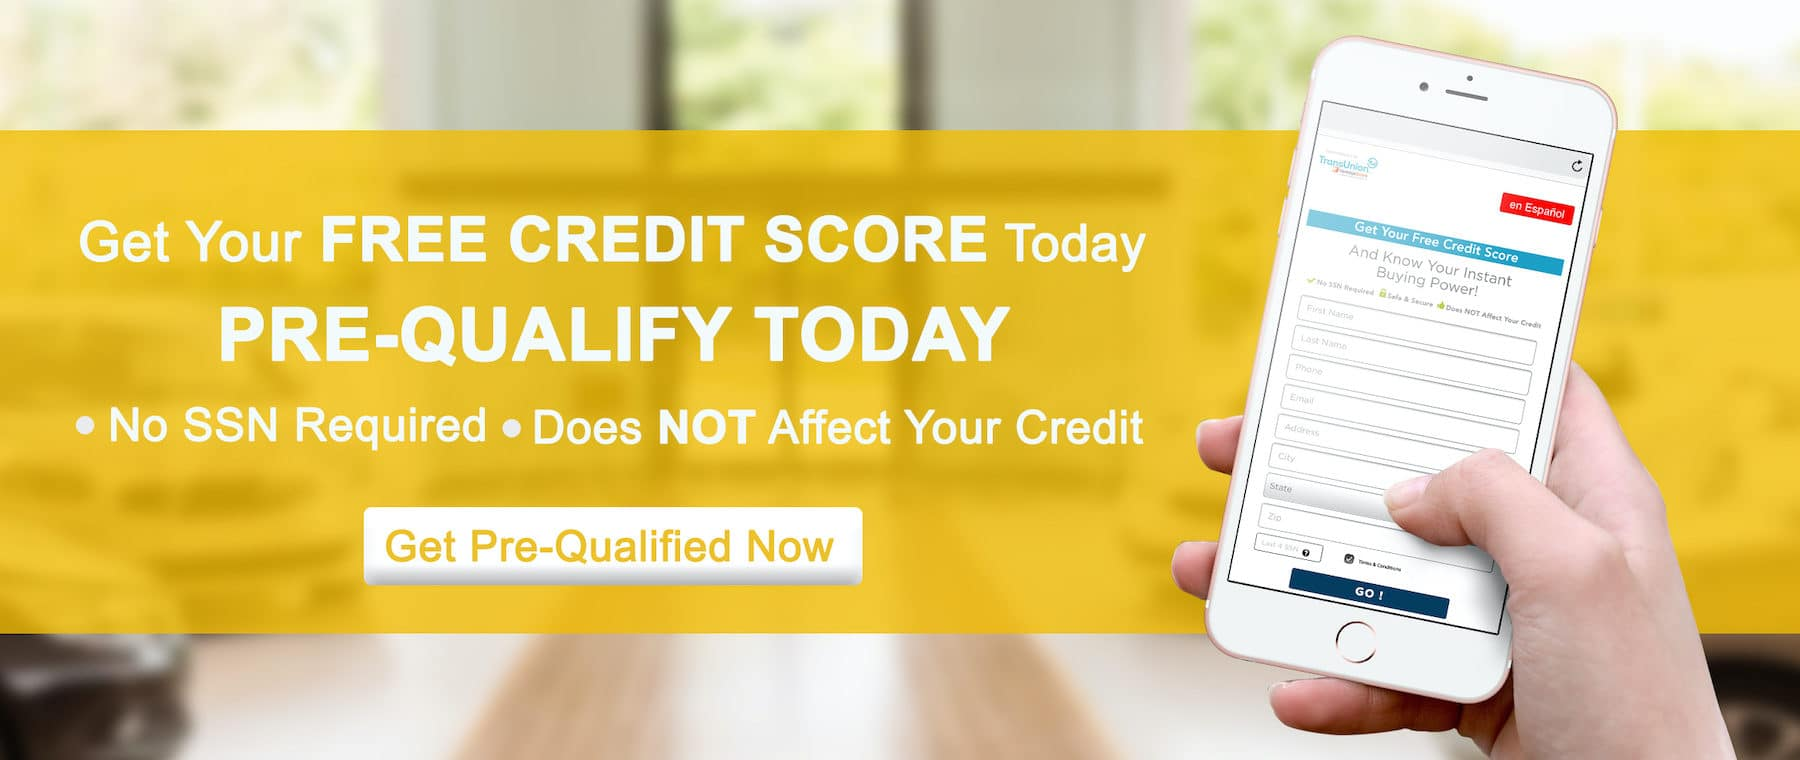 Get your free credit score today